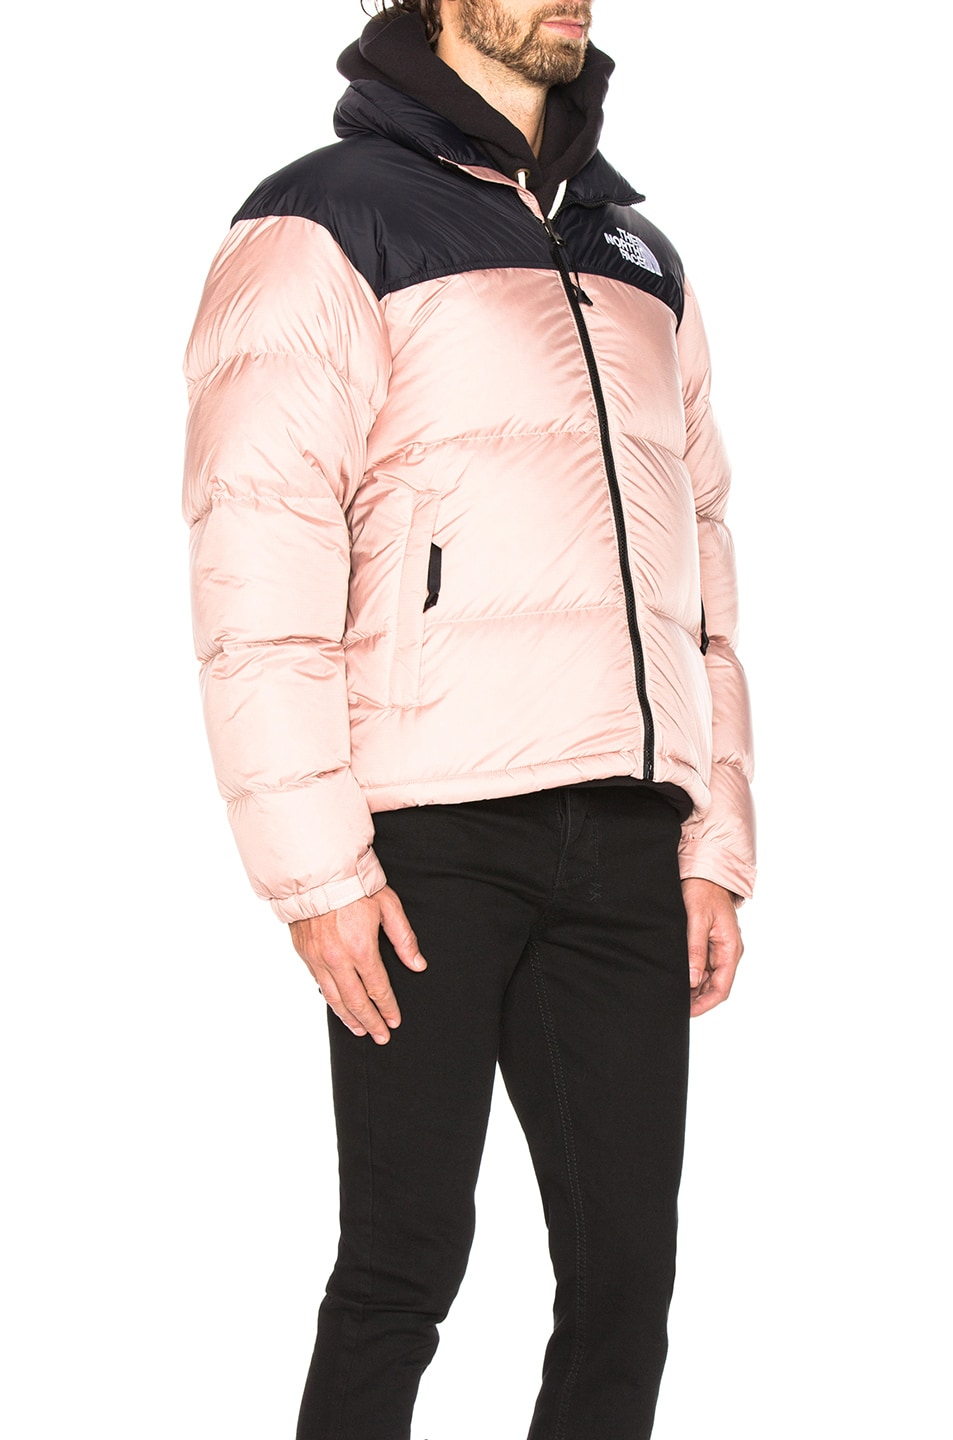 76678f569f10 Image 3 of The North Face 1996 Retro Nuptse Jacket in Misty Rose